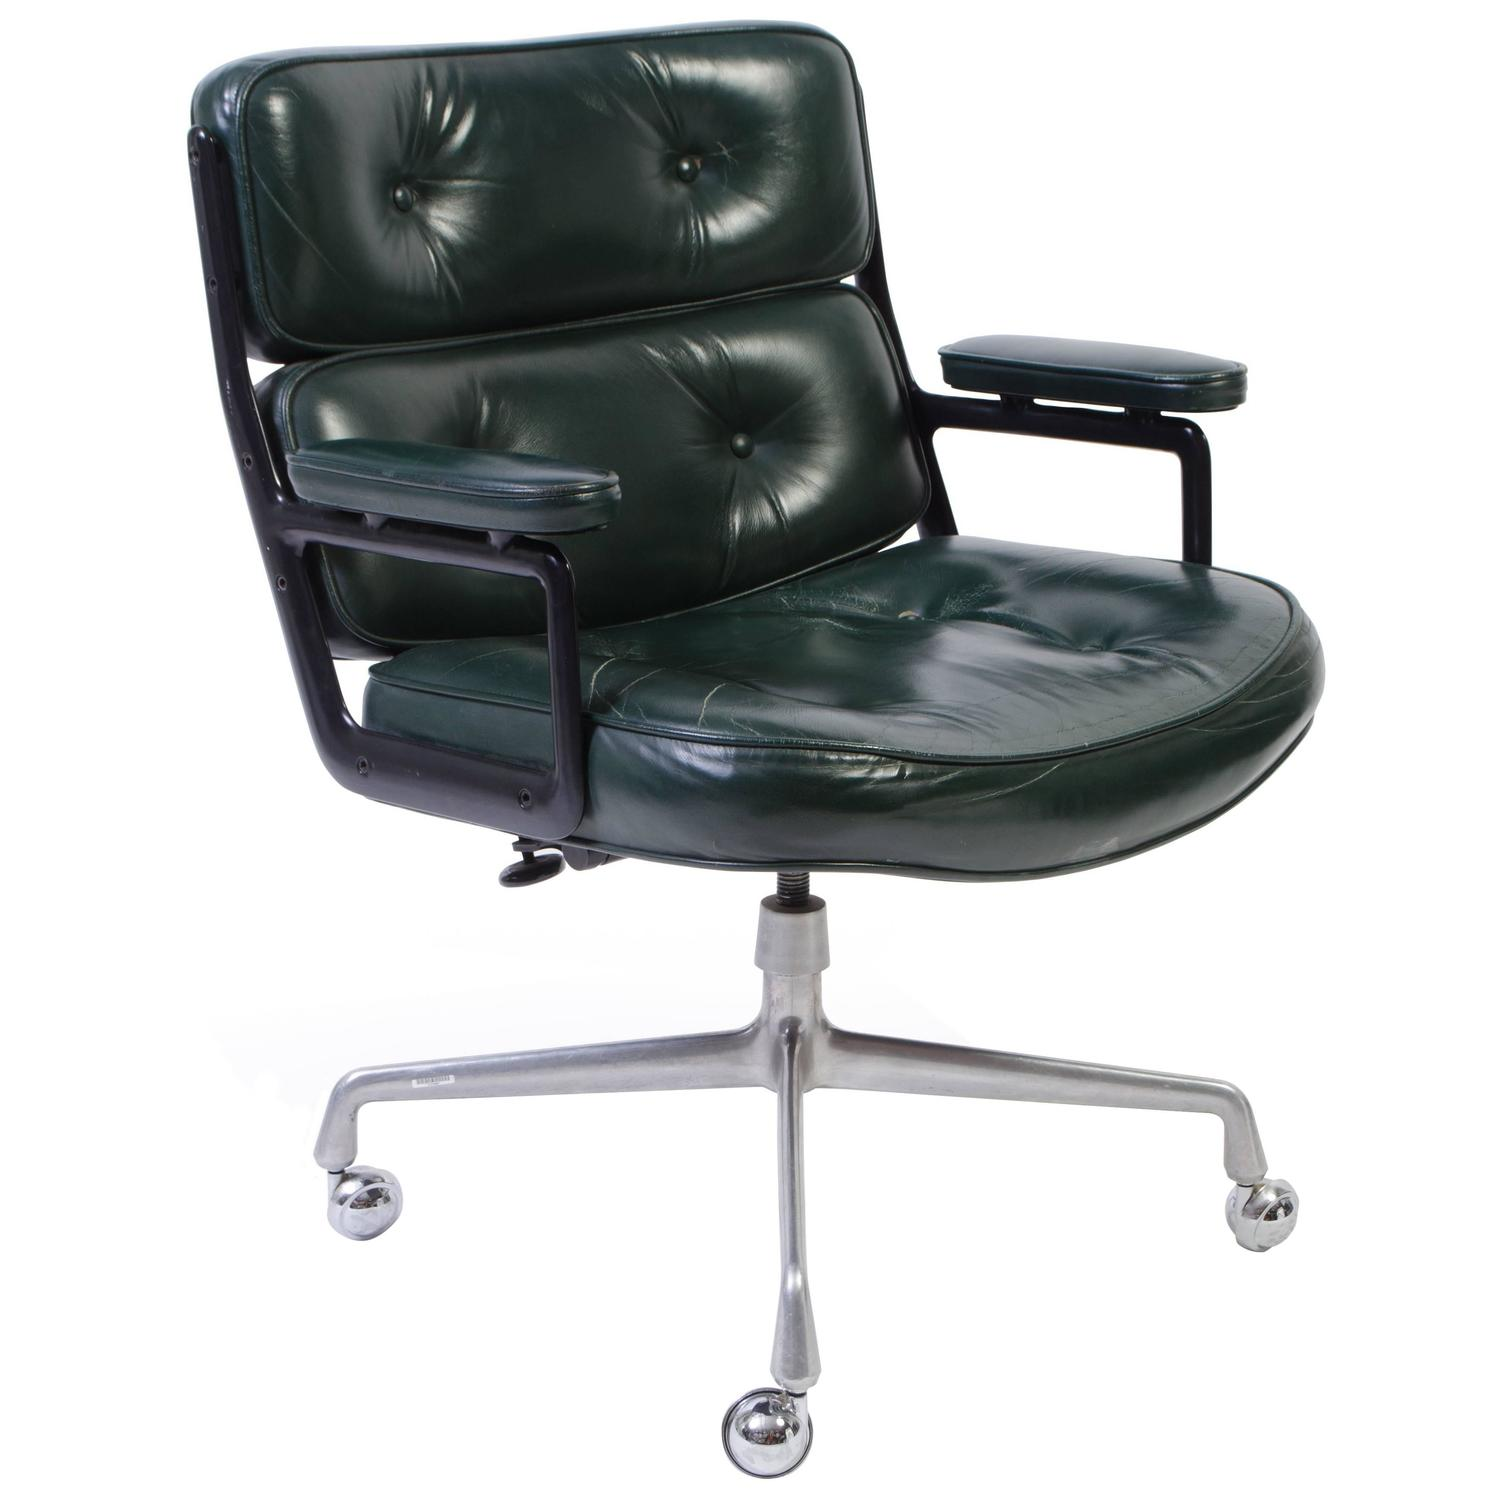 Time Life Chair by Eames for Herman Miller in Green Leather at 1stdibs